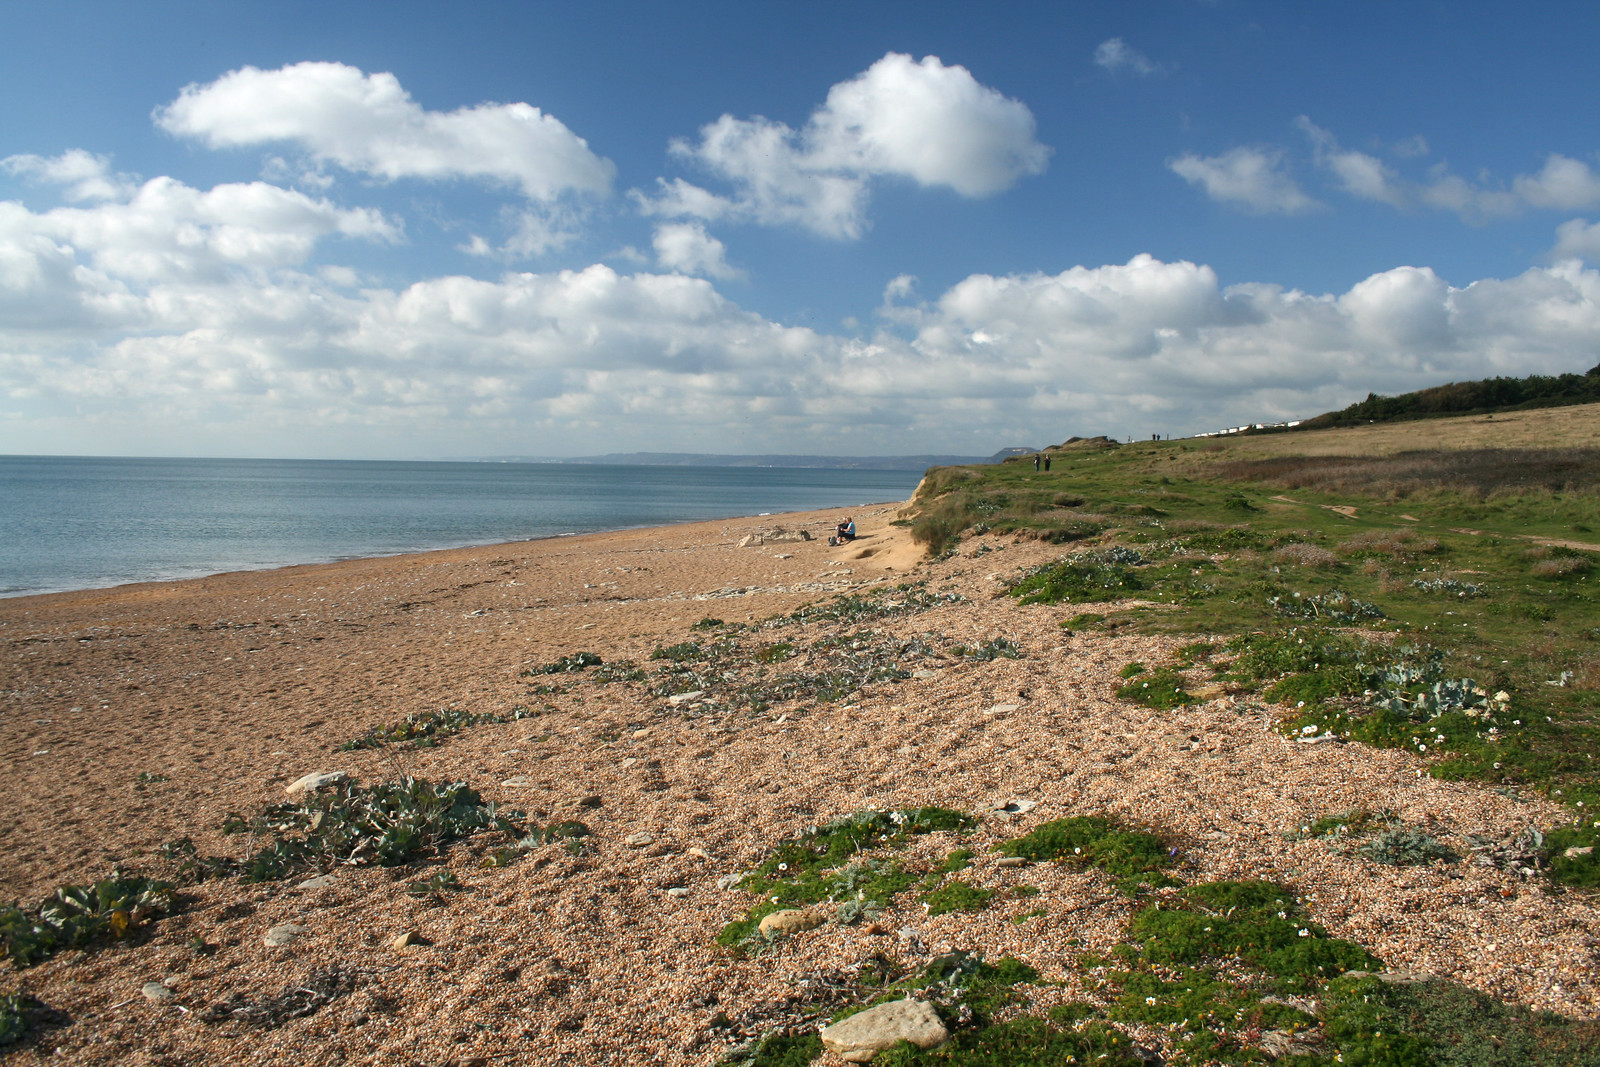 The coast near Abbotsbury